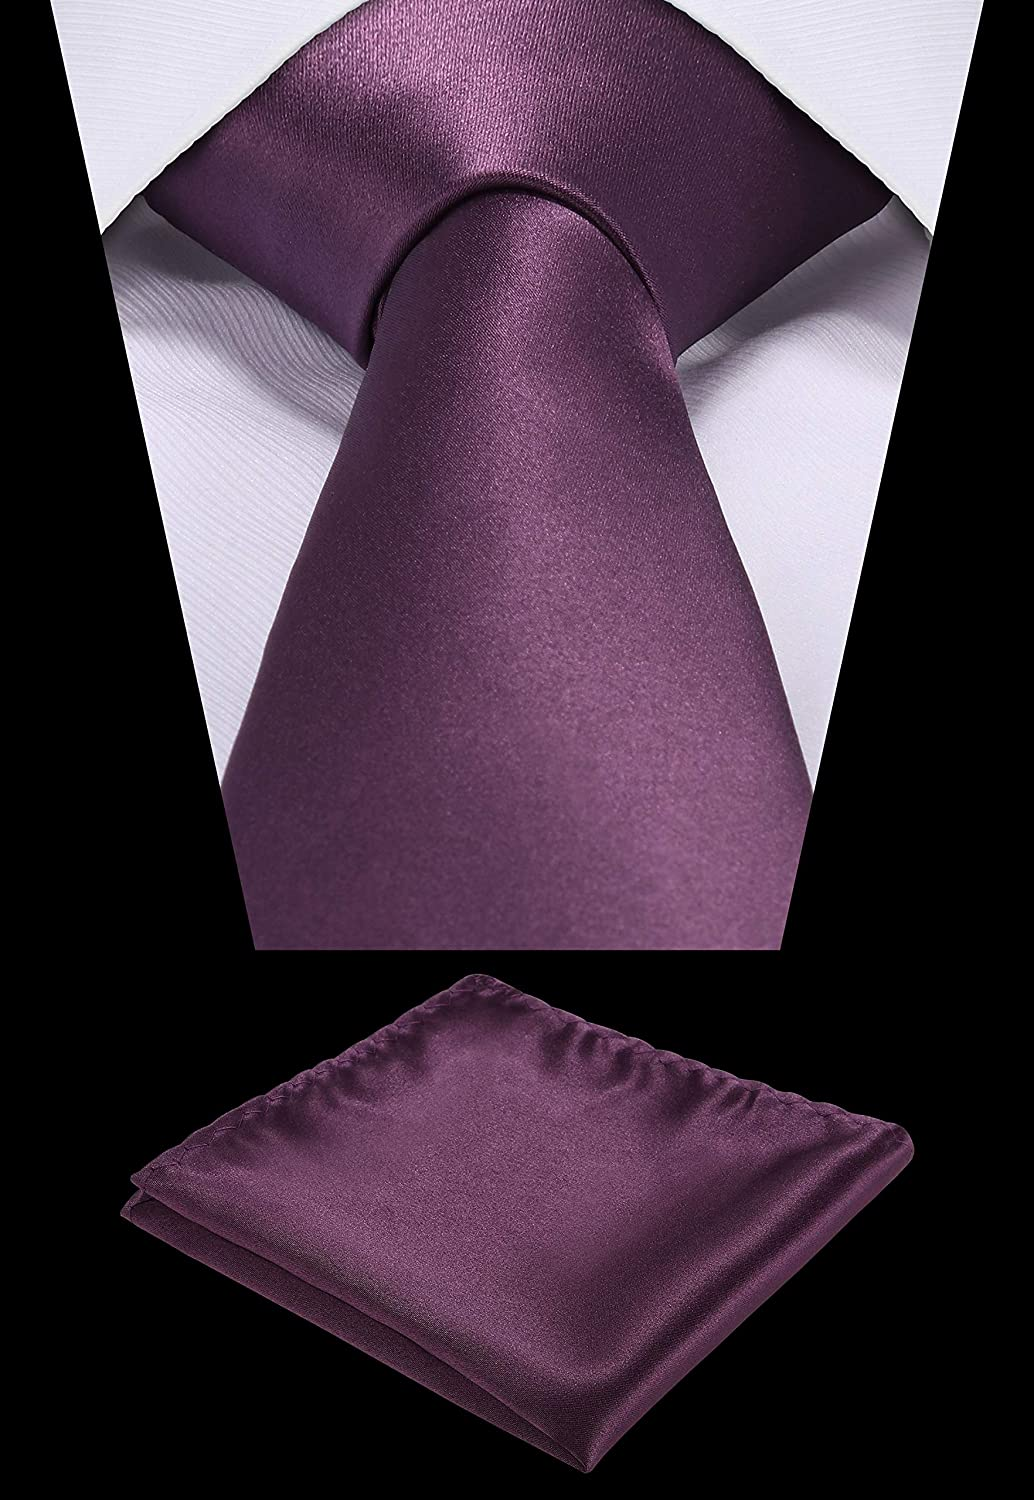 Pocket Square set,Satin Super Fine Micro Fiber,Silky Finishing,Gift Box Packing Wine Gift Box set. Solid Color Neck tie